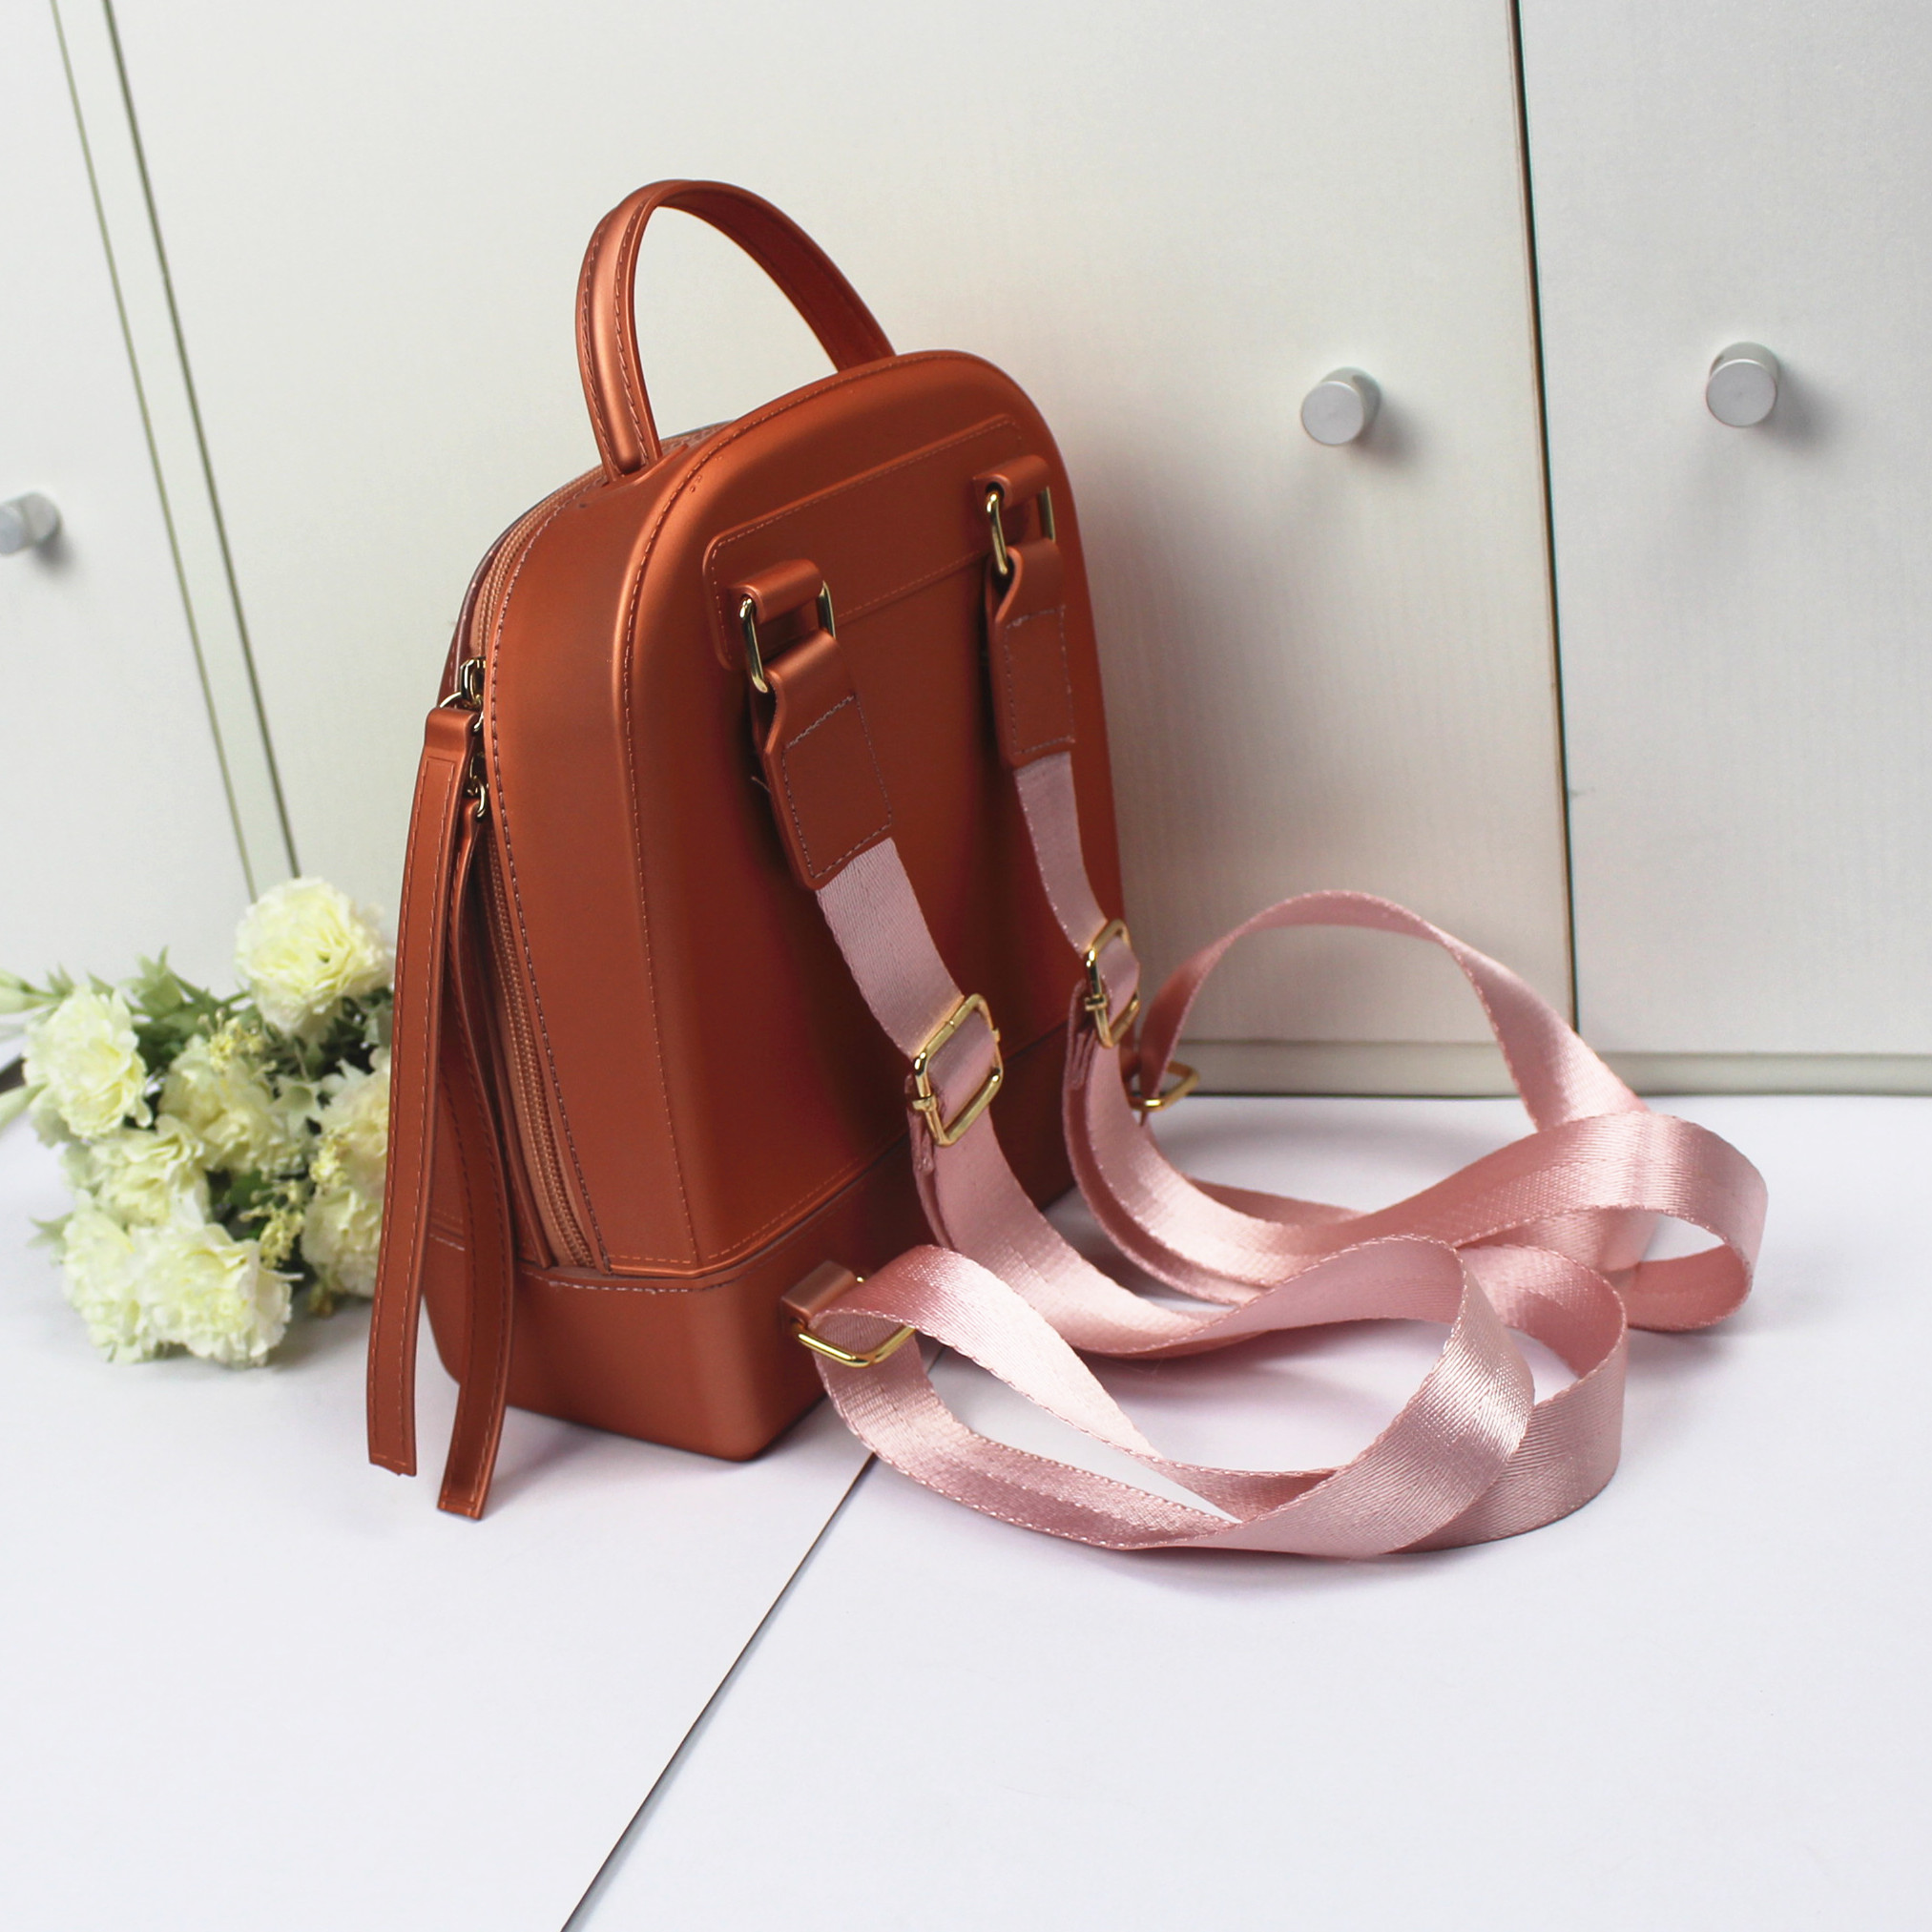 2019 New Arrivals  Free Sample Accept Wholesalers or Retailers for  jelly backpack